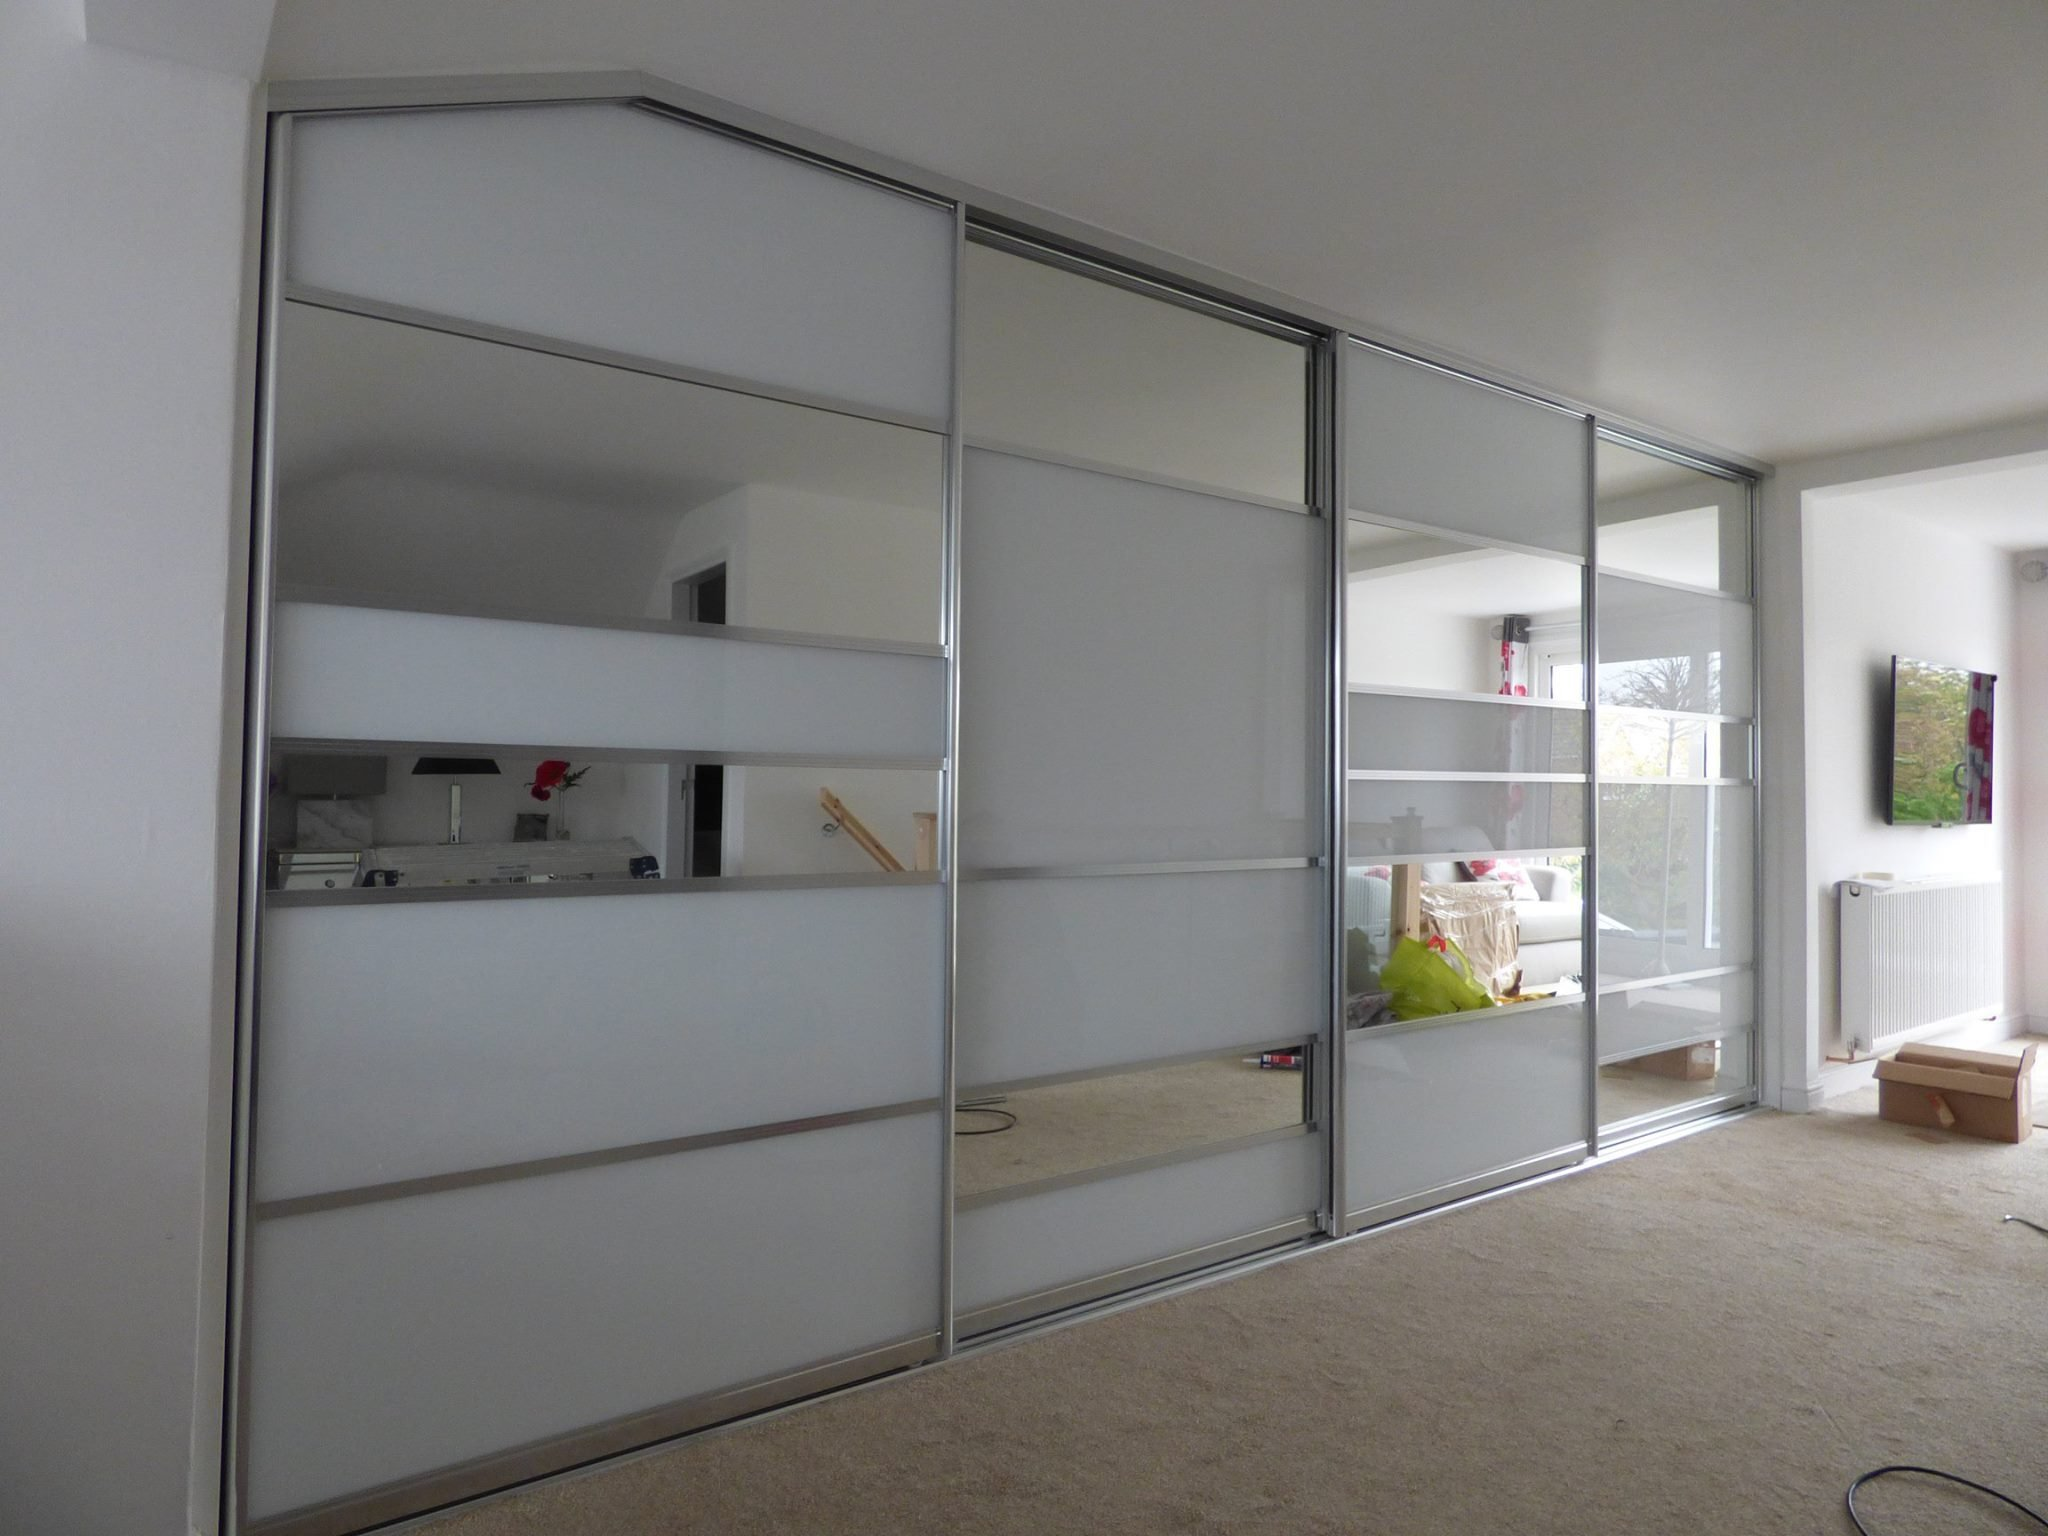 Best Sliding Wardrobe Gallery Photos Ideas And Designs In Hull With Pictures